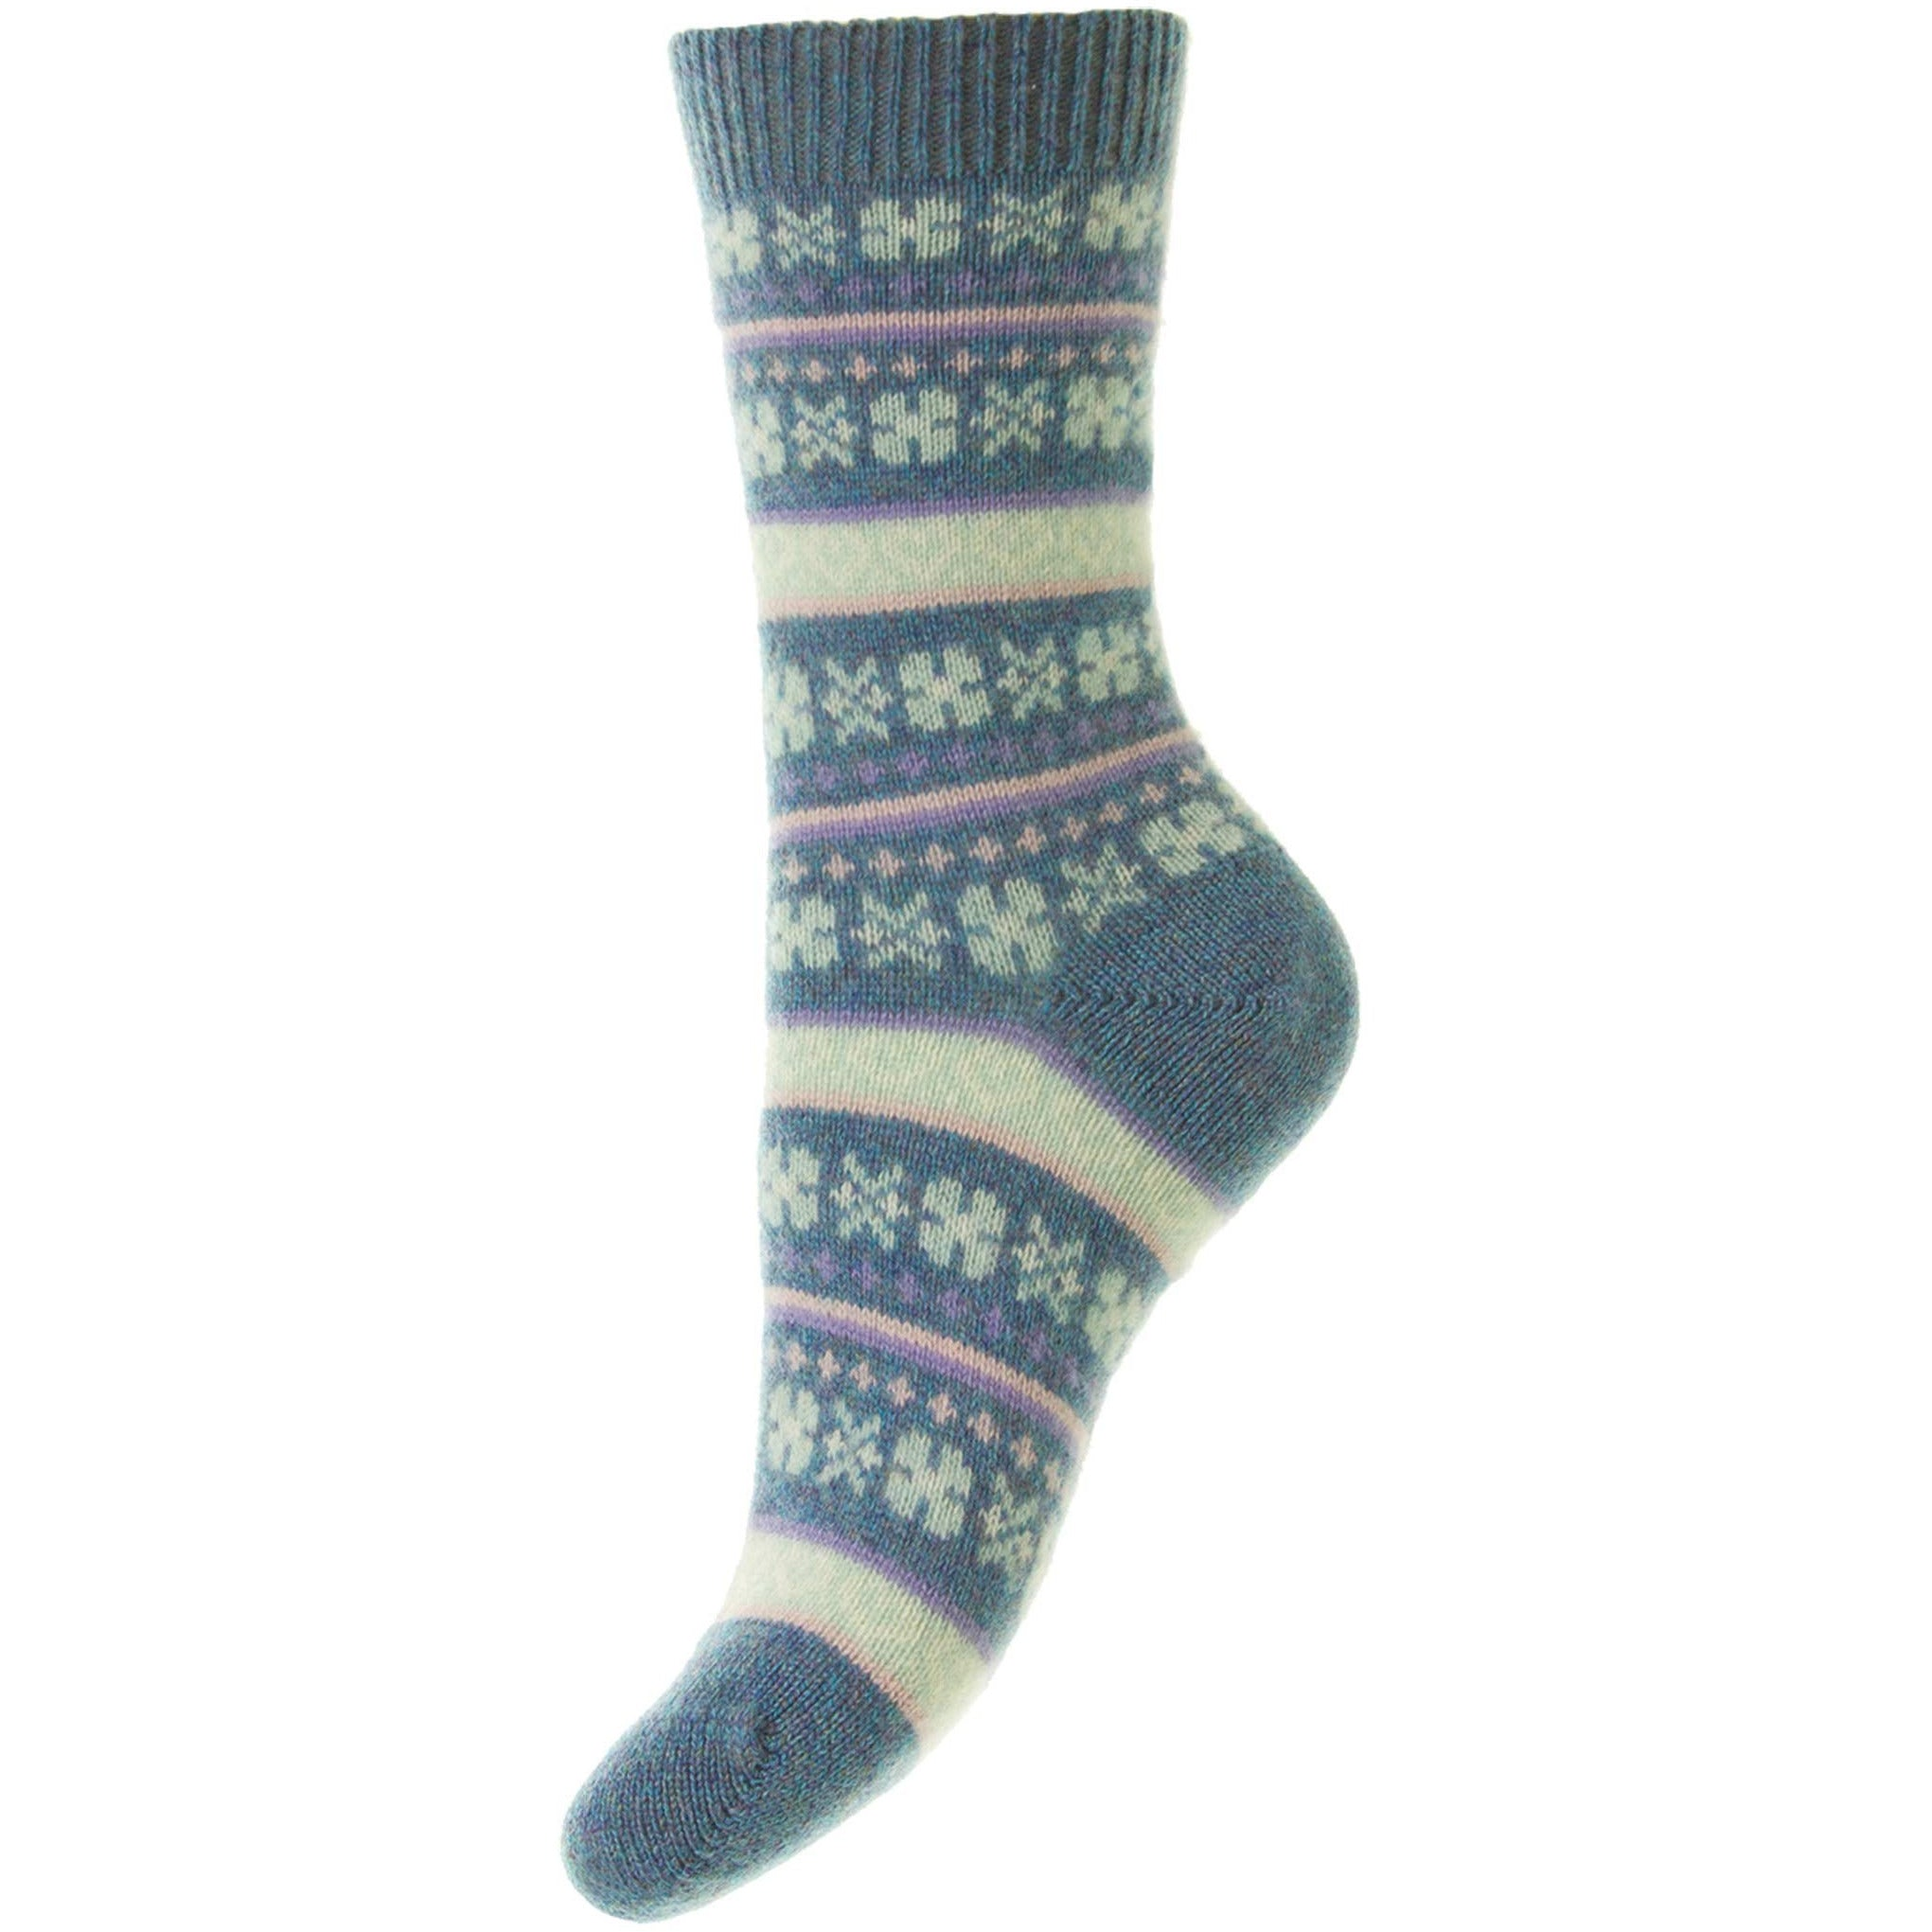 Arabella Heart Fairisle Cashmere Ladies Socks